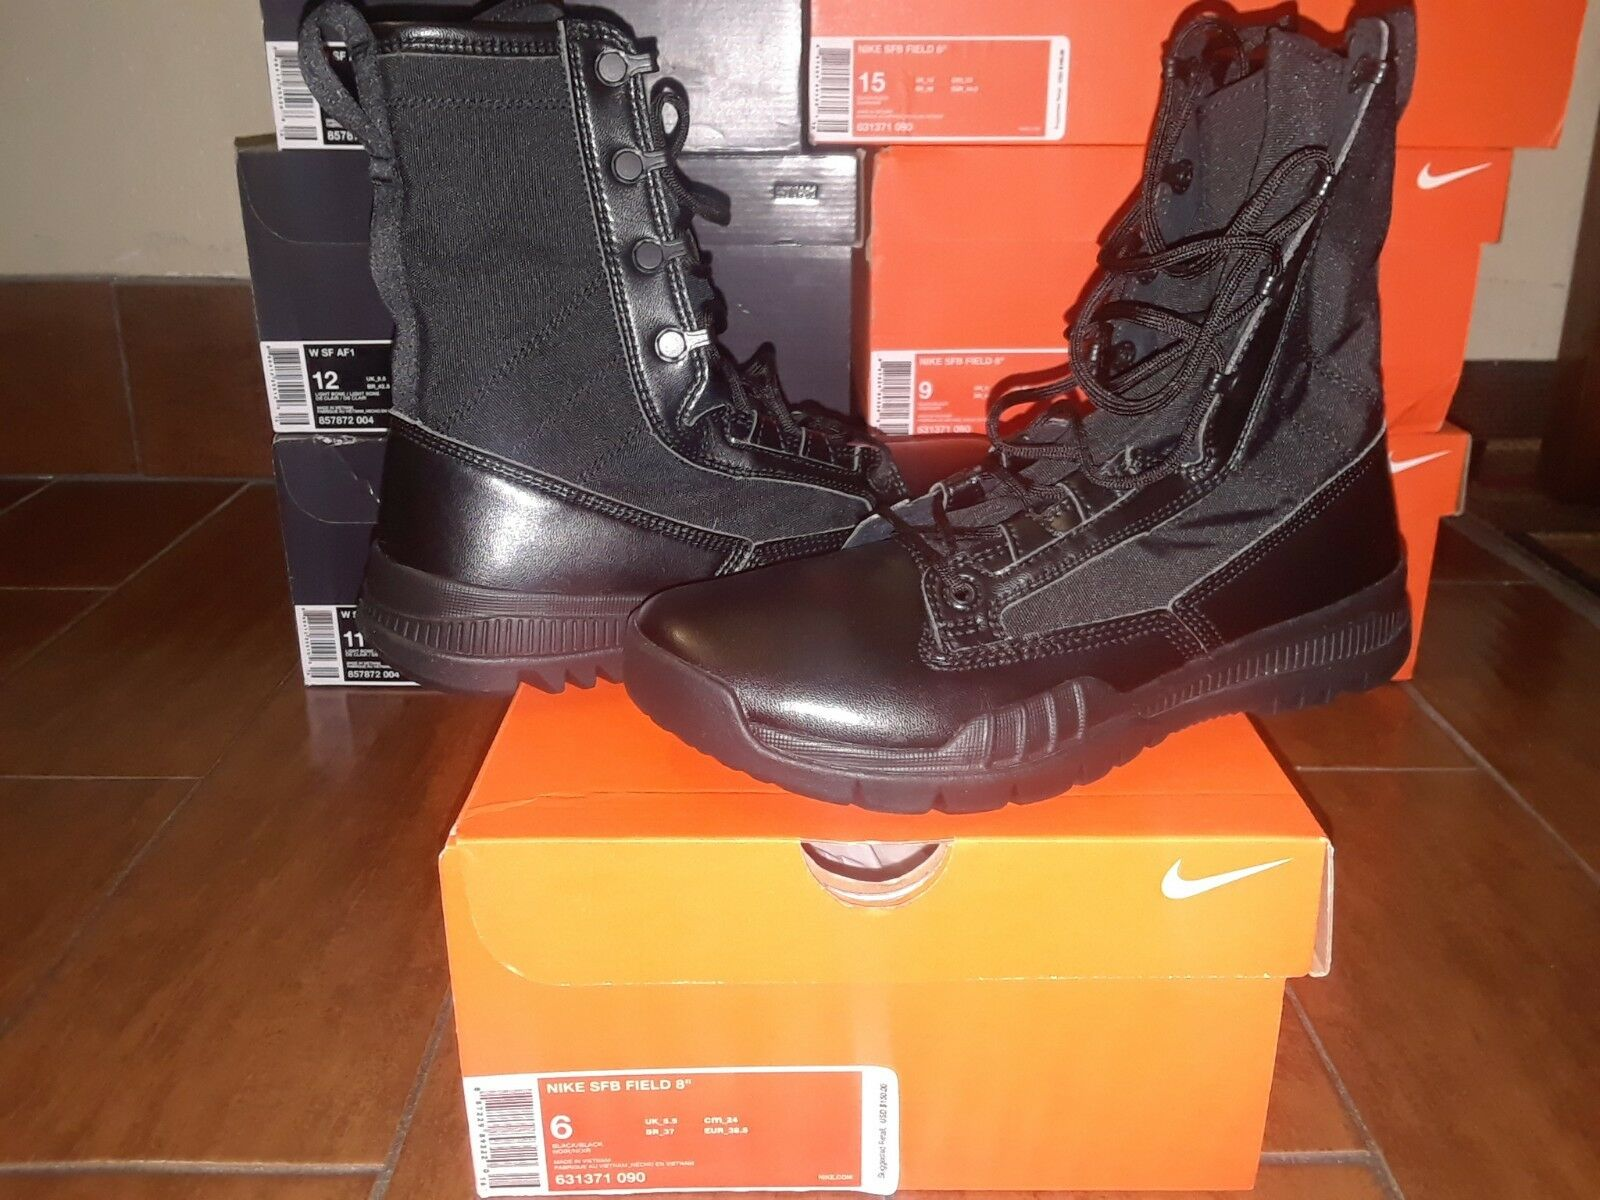 Nike Air SFB 8  Special Field Field Field ACG Black Police Swat Military Tactical 631371 090 ff509c